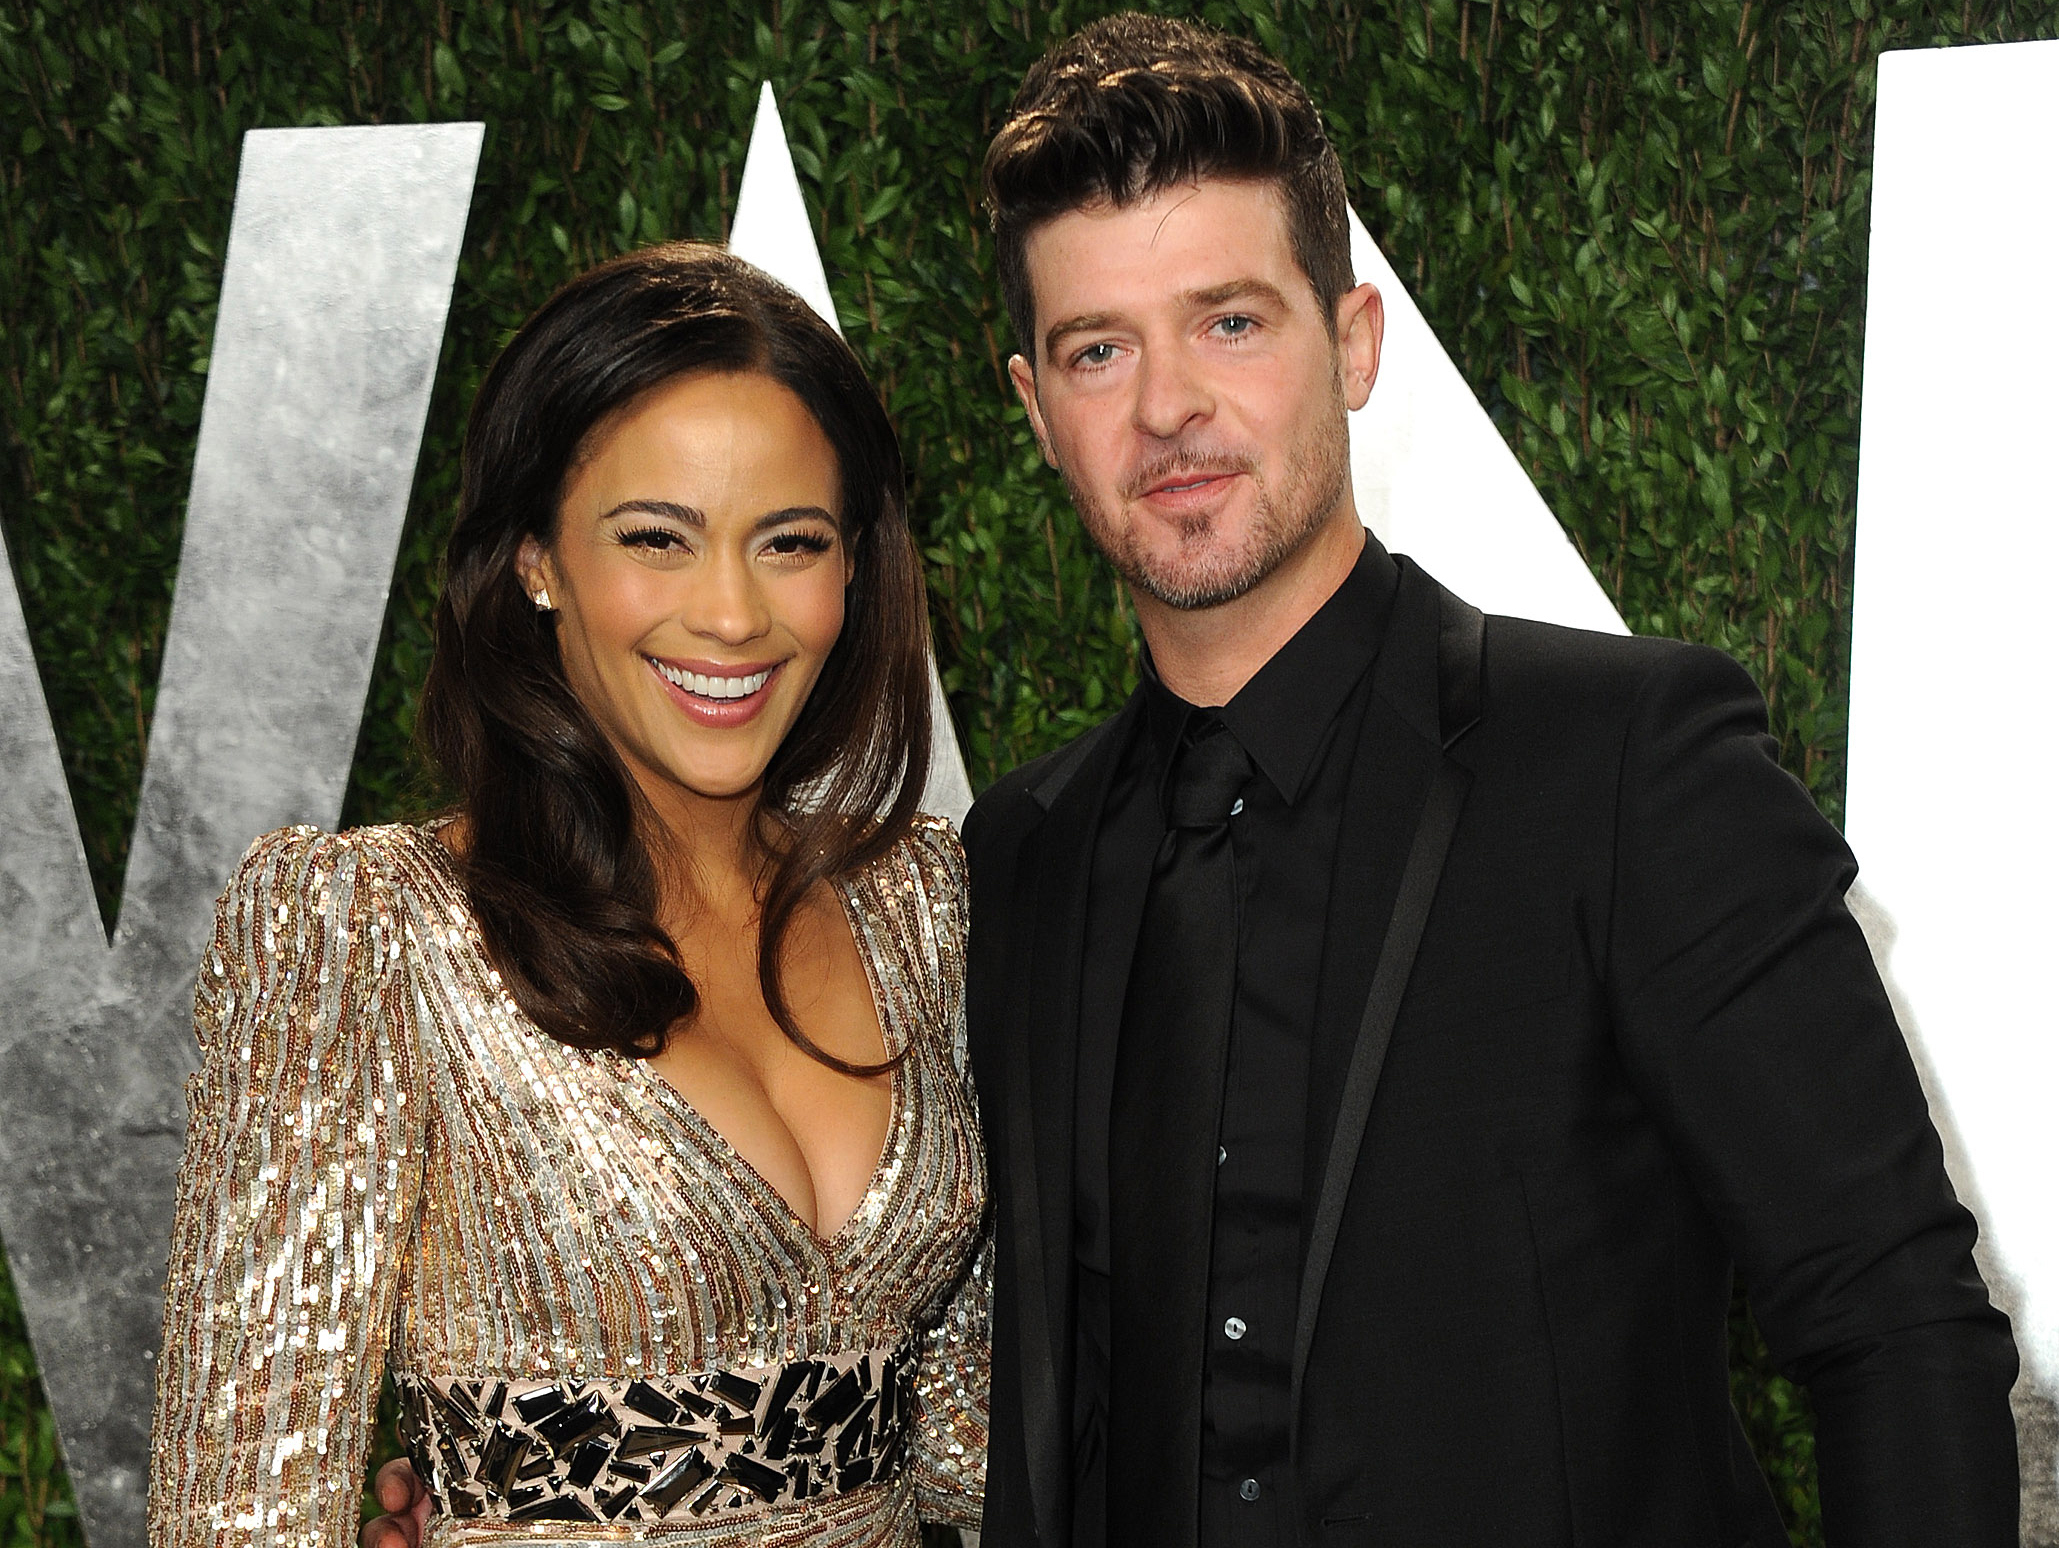 Robin Thicke speaks out about Paula Patton split